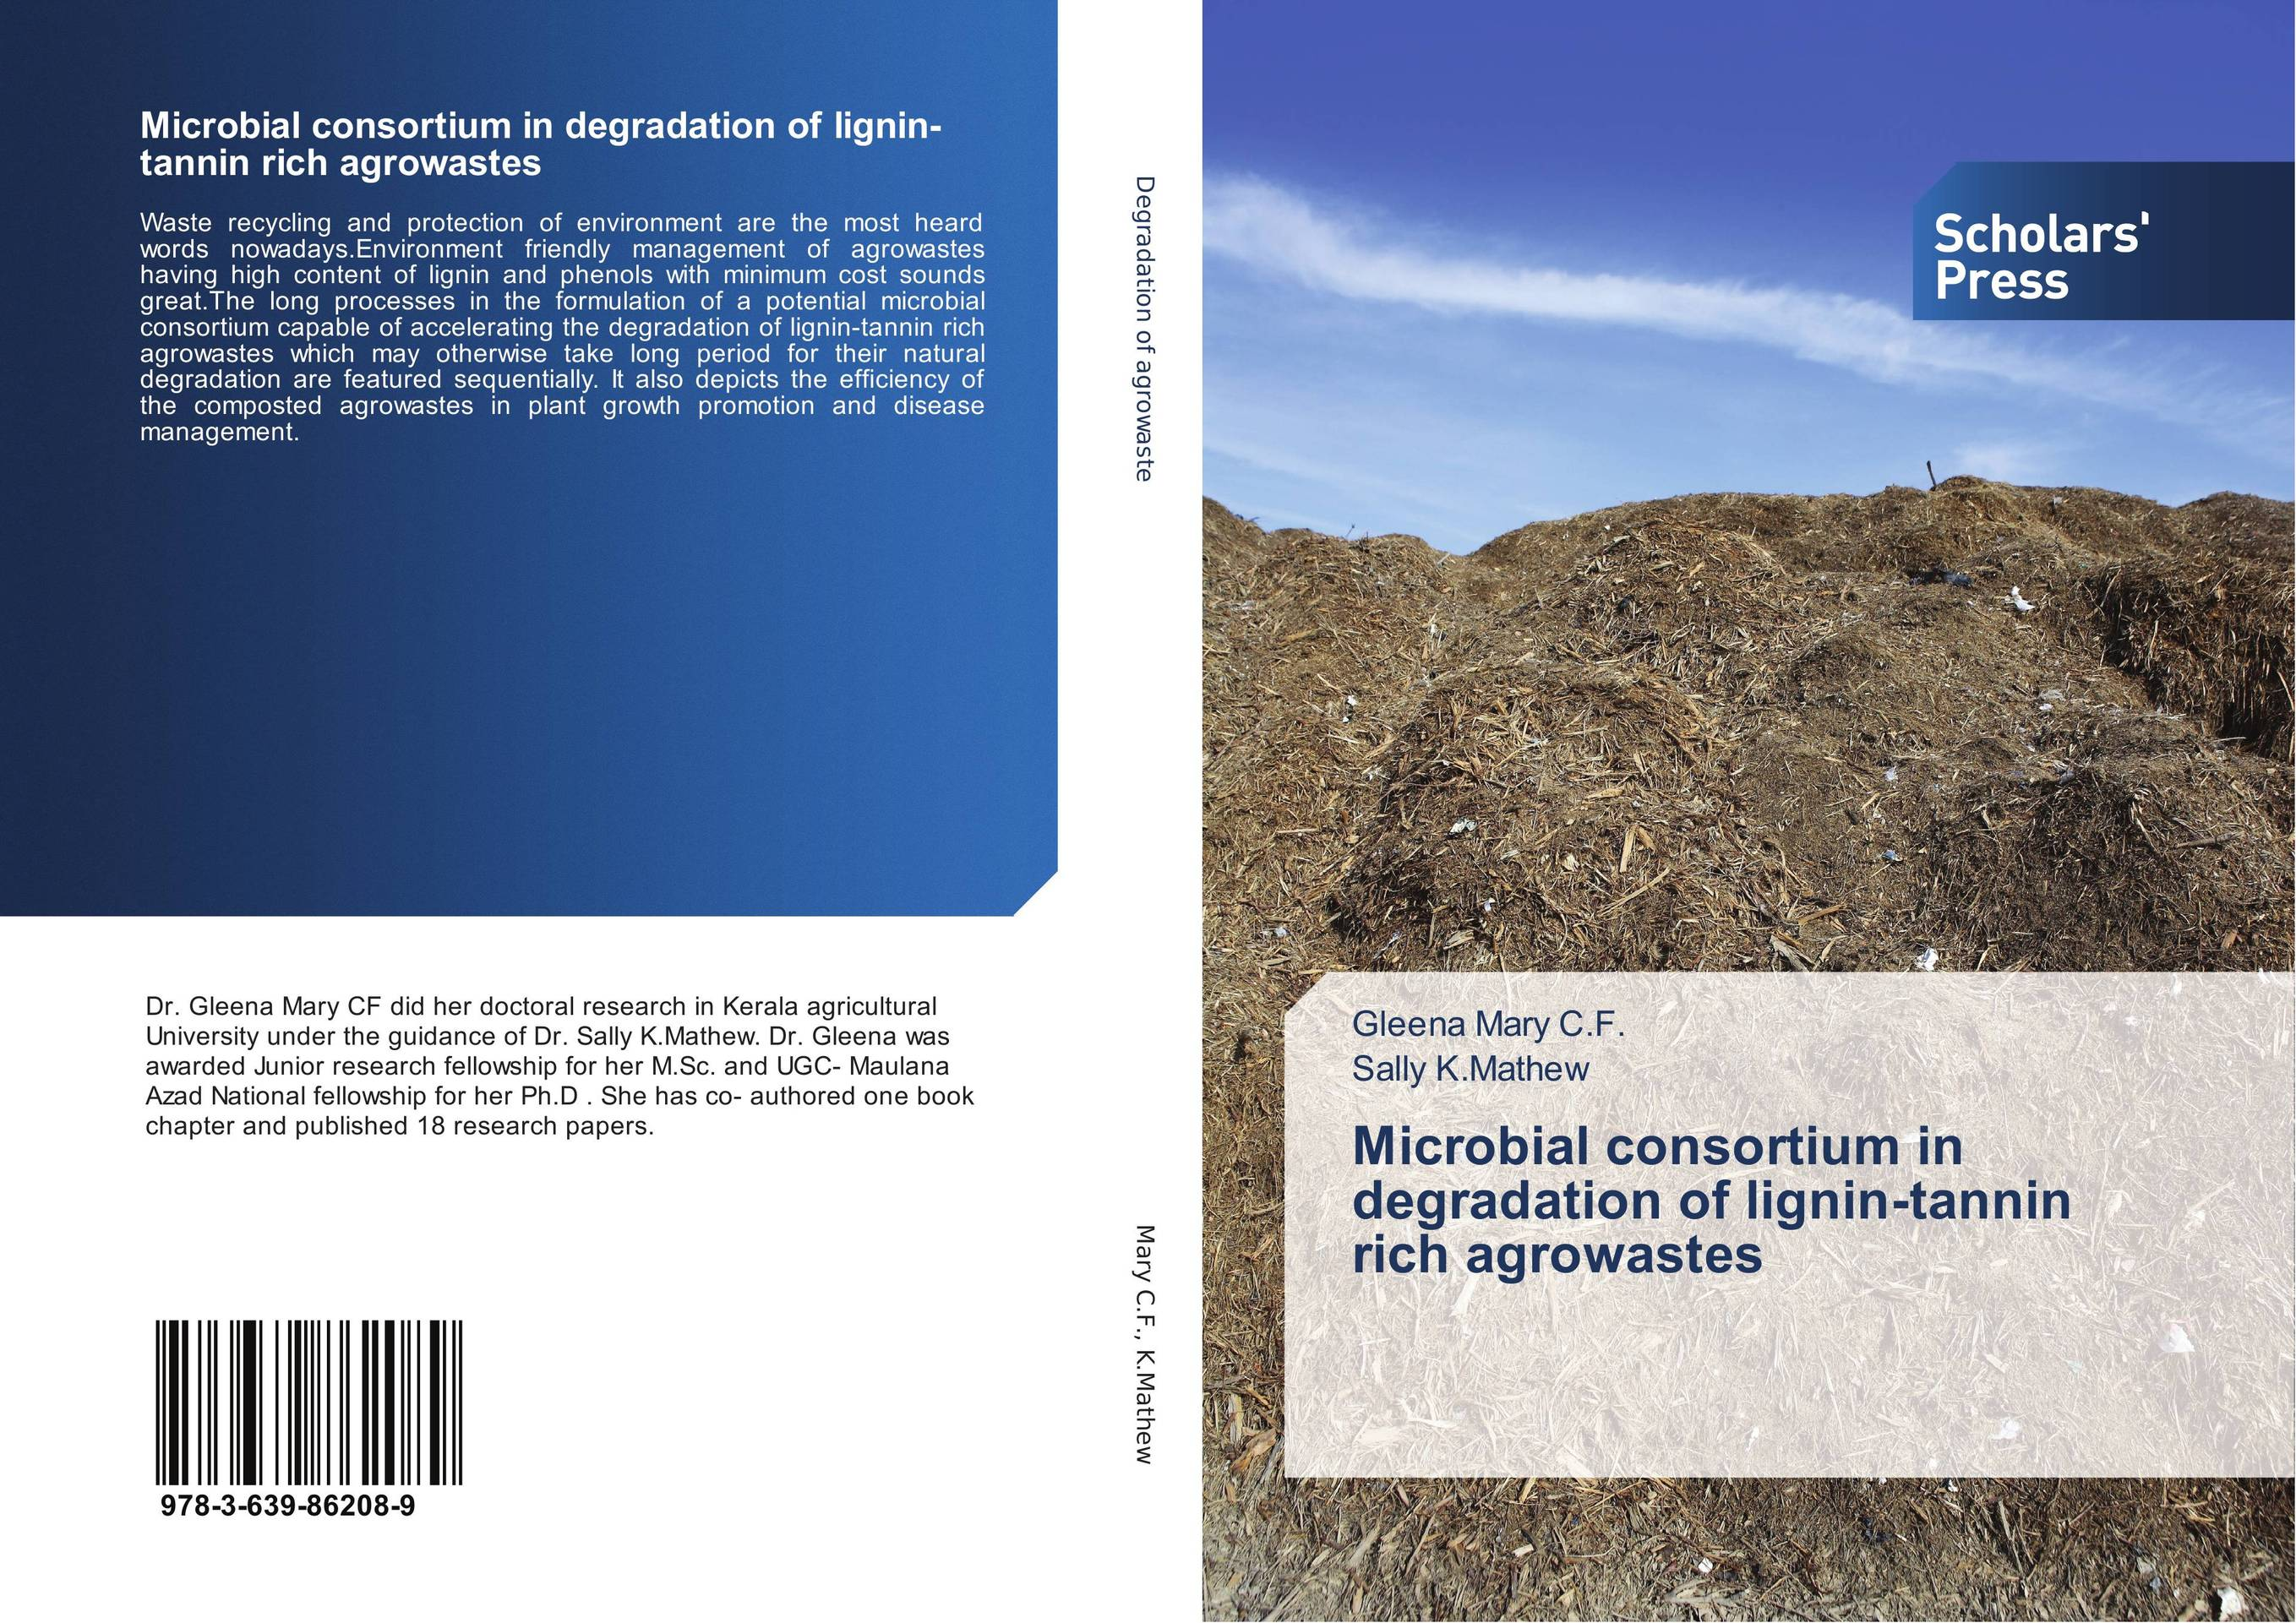 Microbial consortium in degradation of lignin-tannin rich agrowastes ruminant feeds evaluation for microbial biomass synthesis efficiency